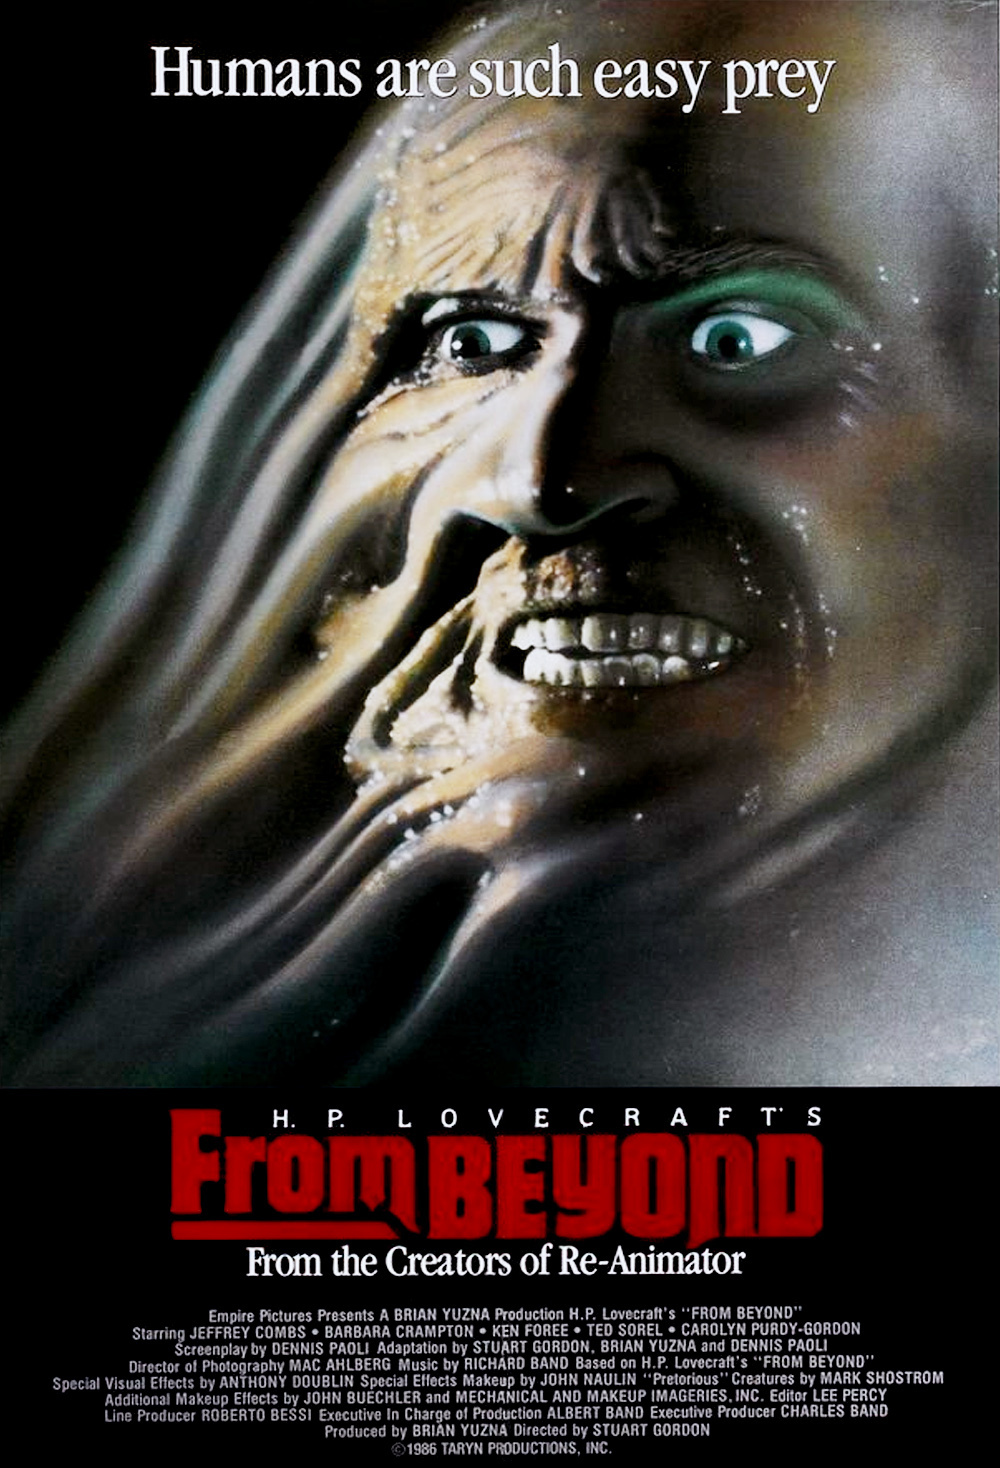 From-Beyond-1986-00